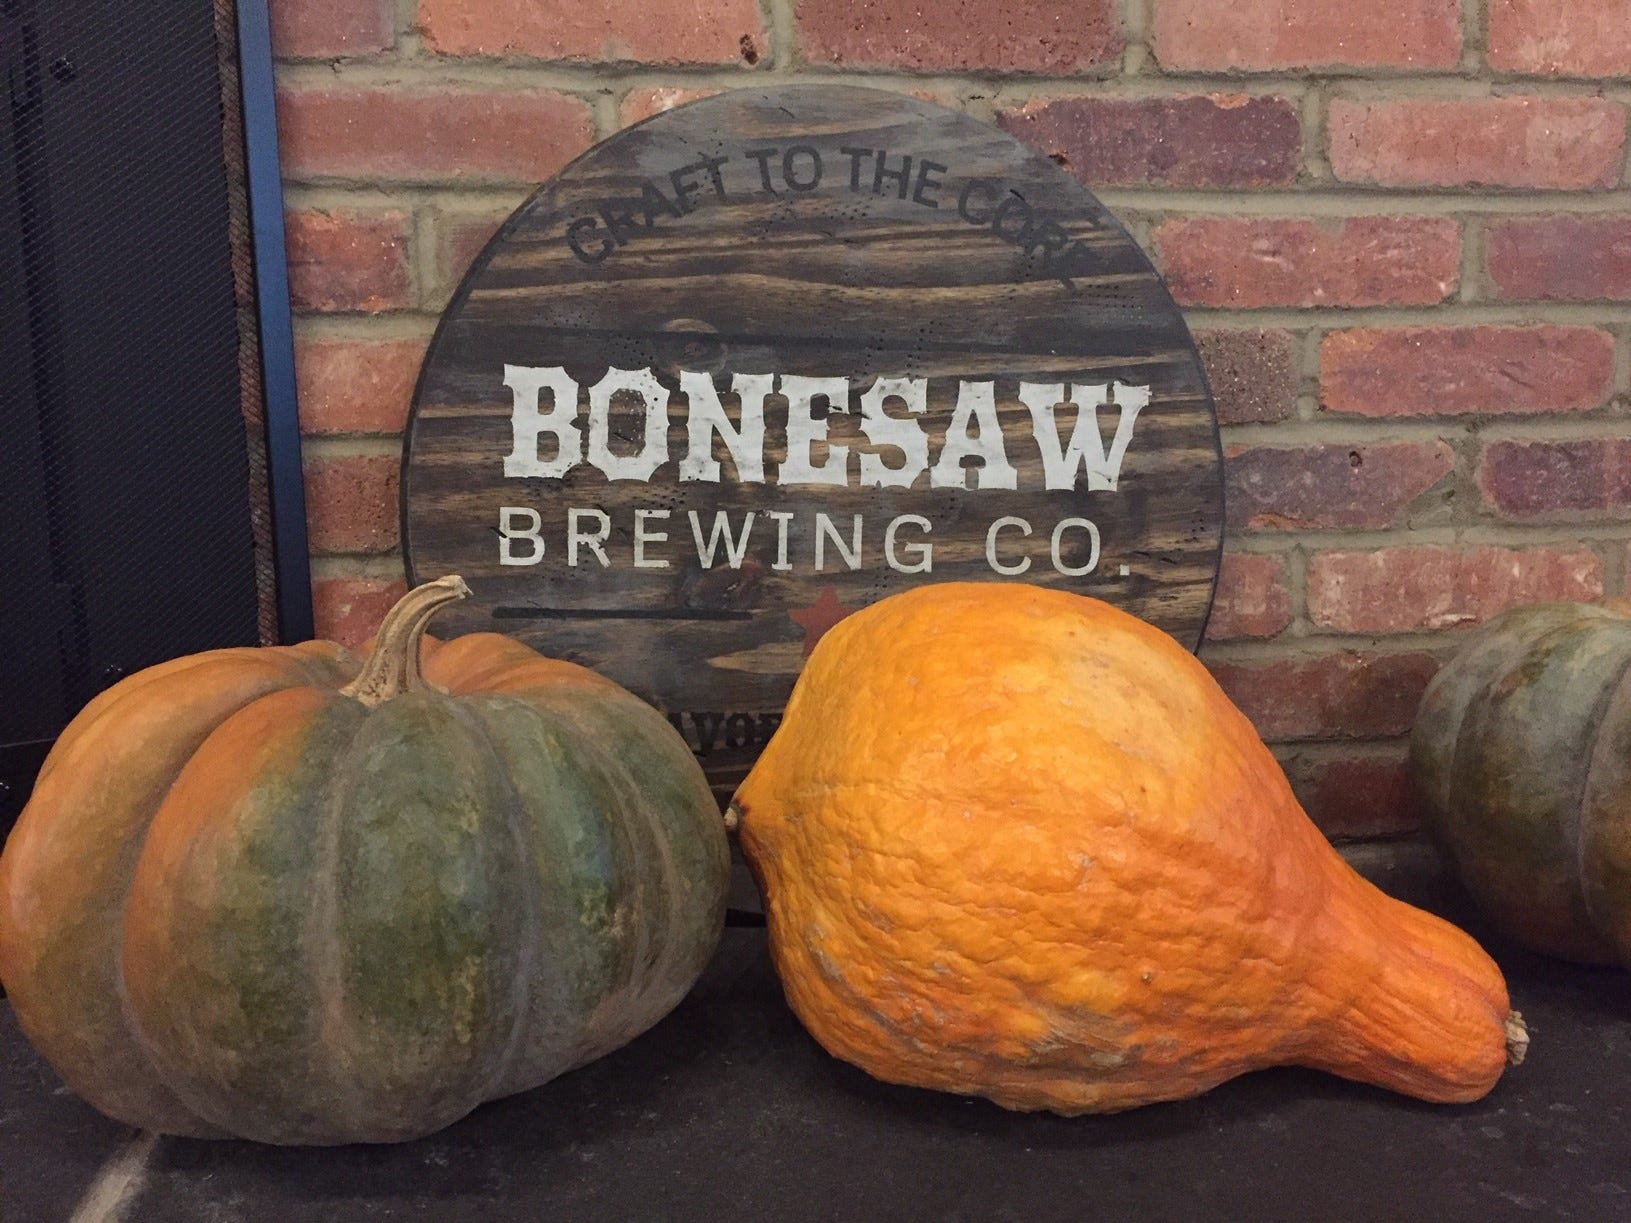 The themes of Bonesaw Brewing Company pair well with Halloween.